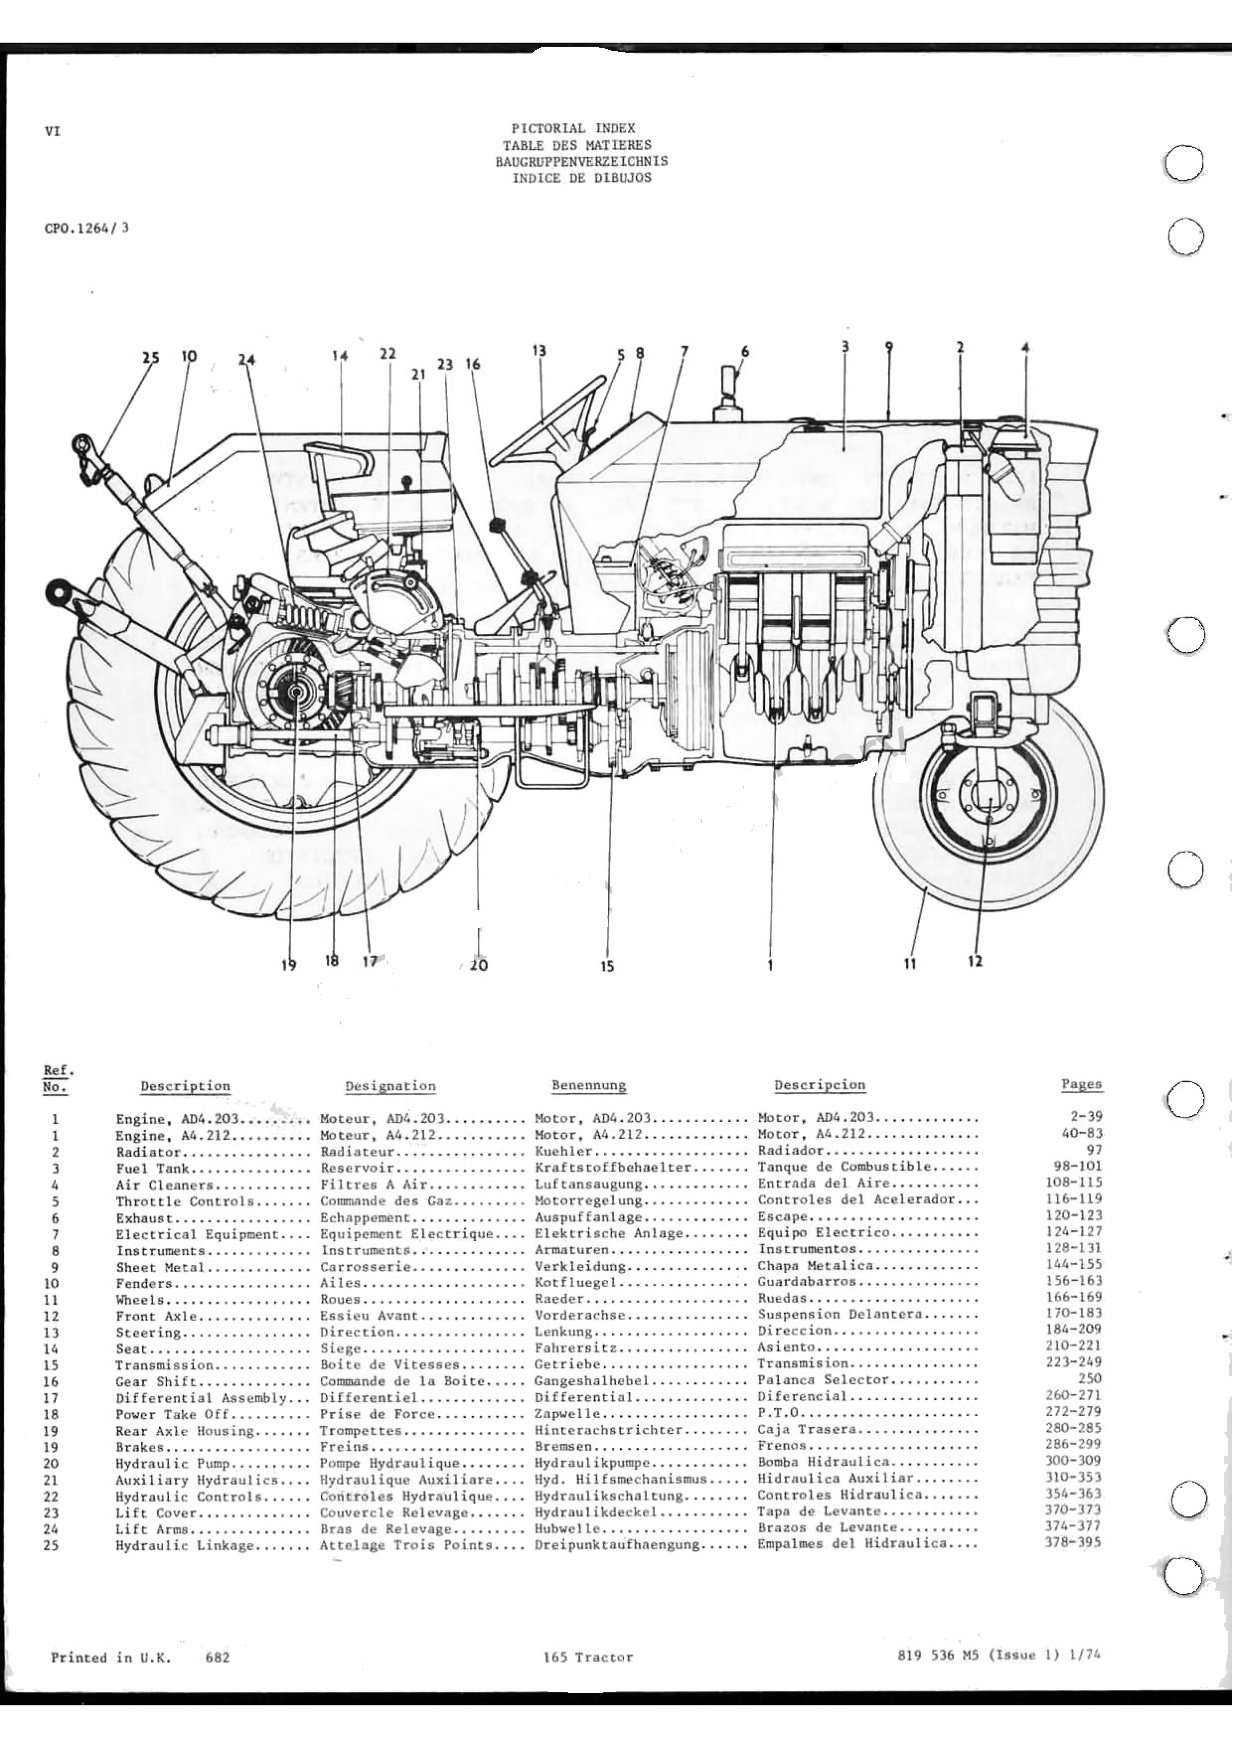 massey ferguson 165 parts diagram 04 dodge stratus wiring mf 245 tractor 1085